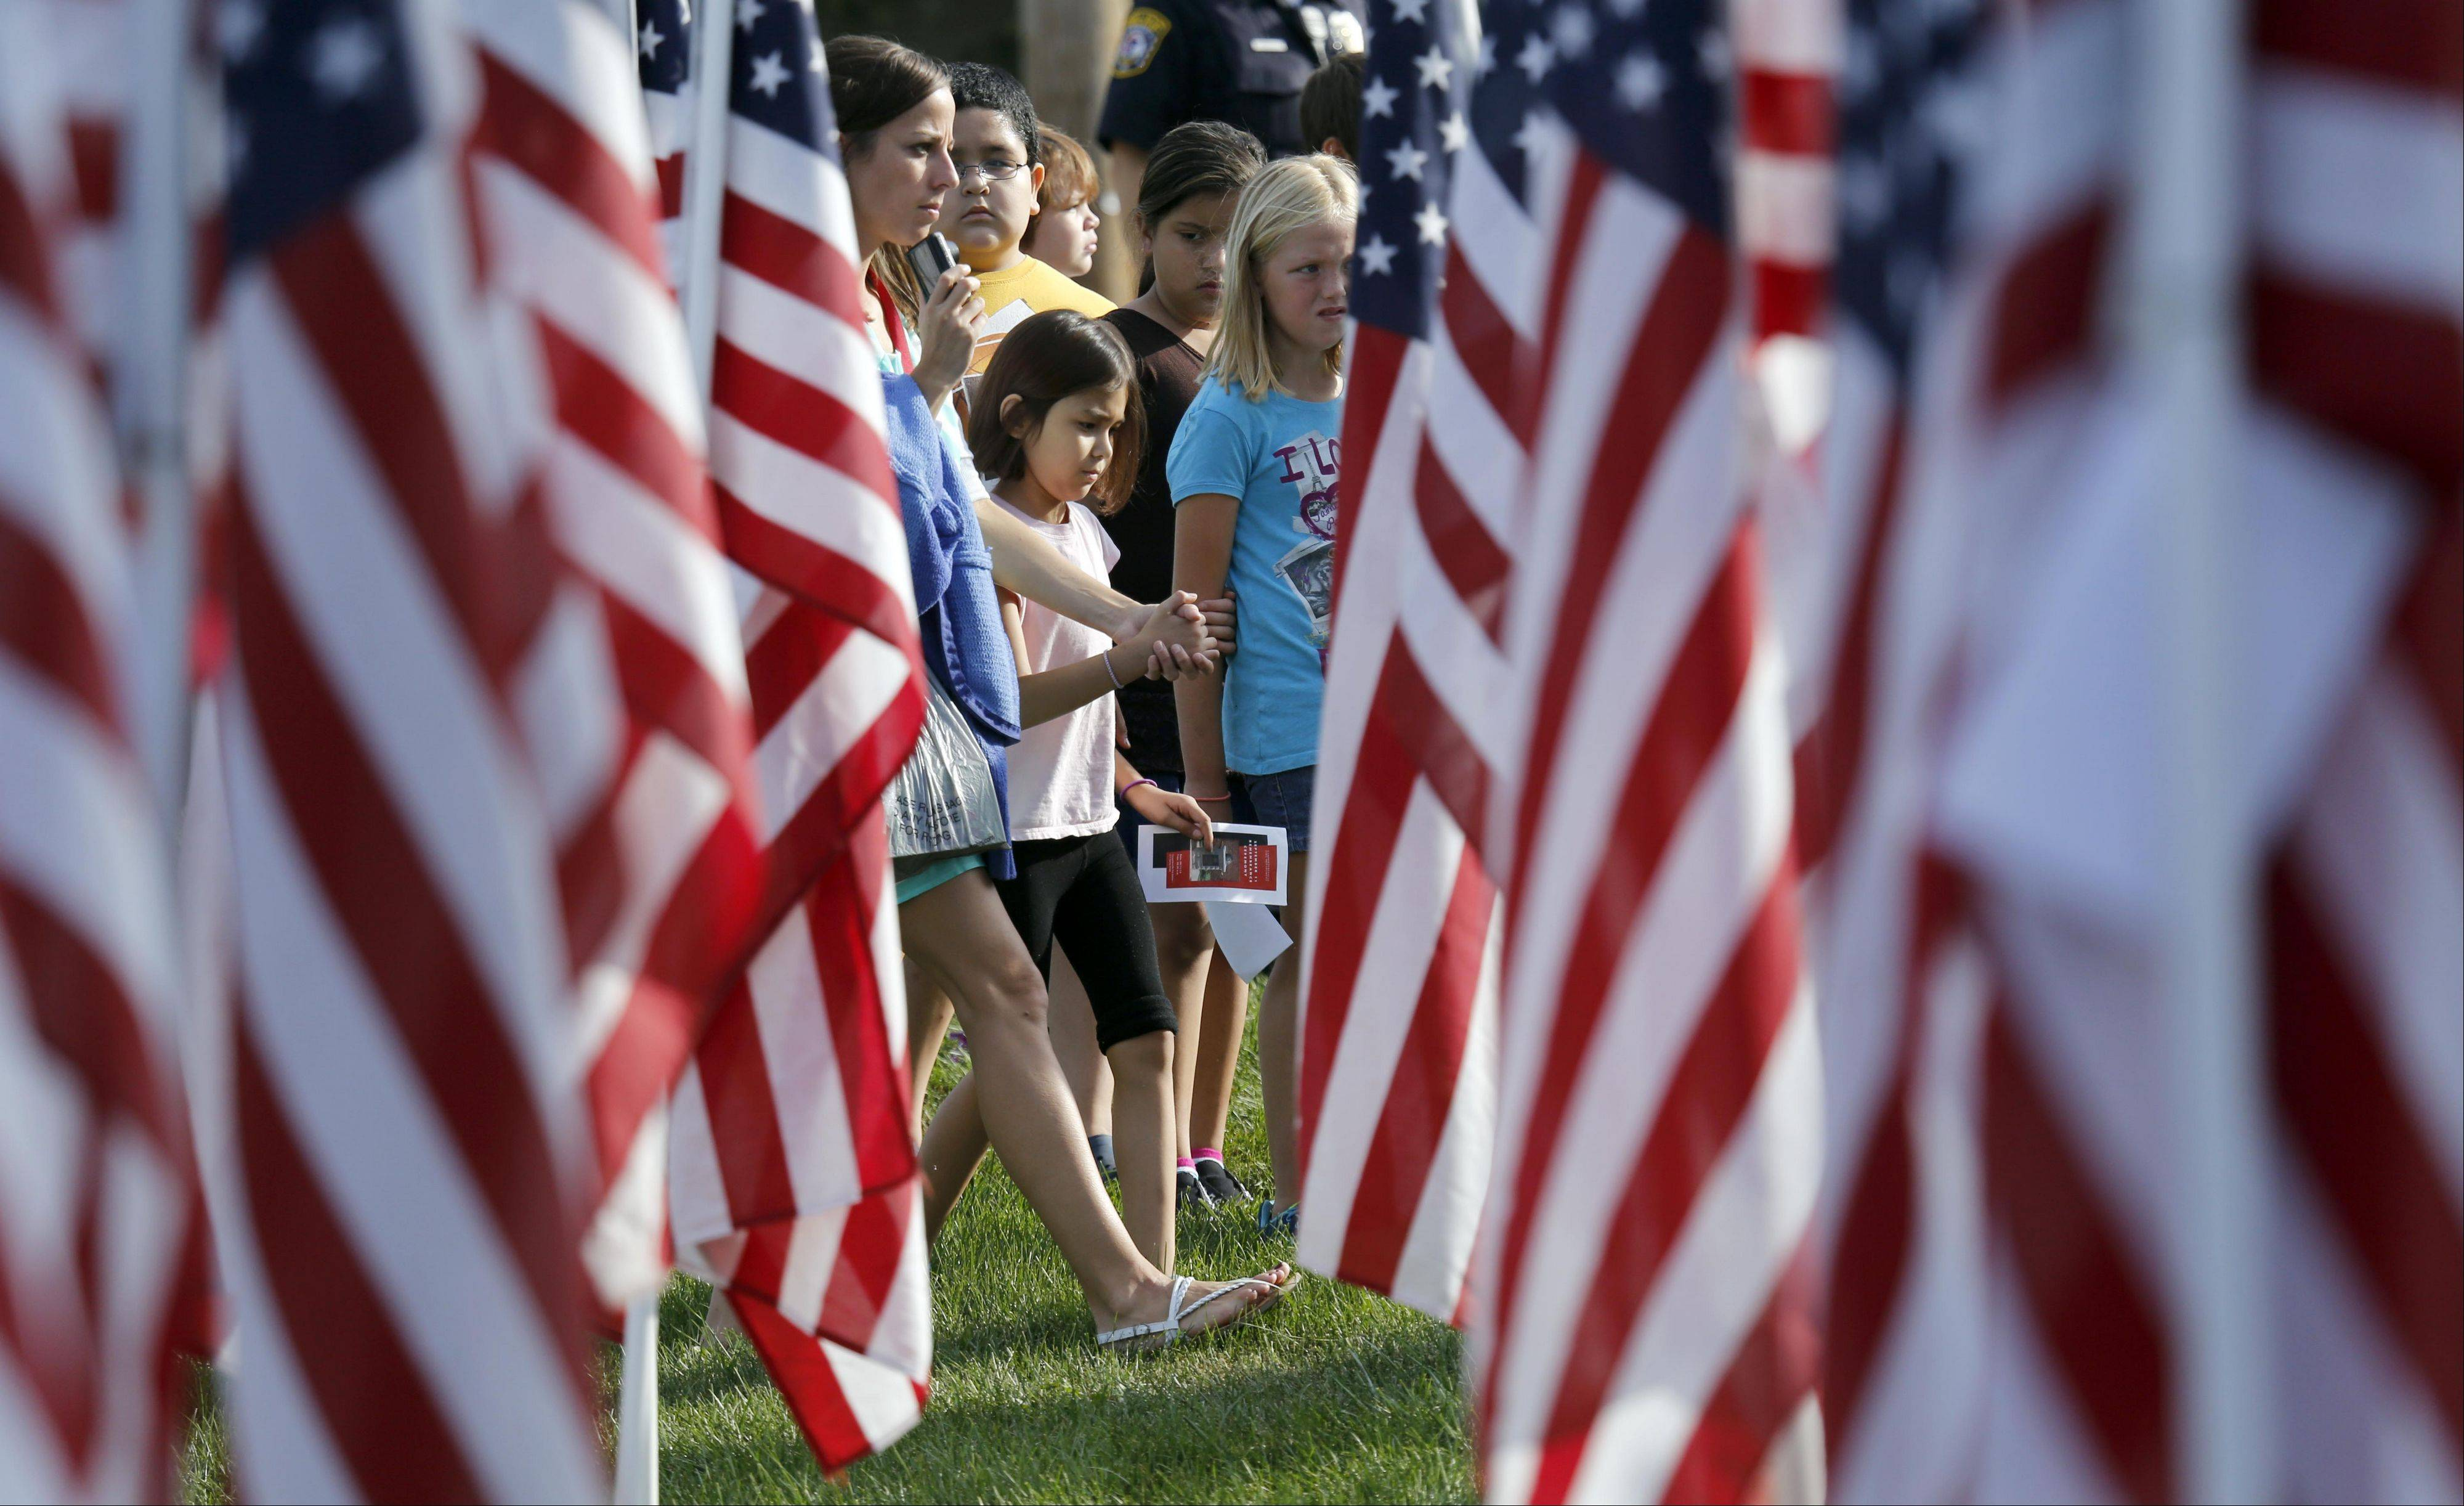 Students from Parkview Elementary School who attended the Sept. 11 ceremony Wednesday at Carpentersville Fire Station 1 file past some of the more than 400 flags representing the firefighters, port authority, and police officers that lost their lives that day.